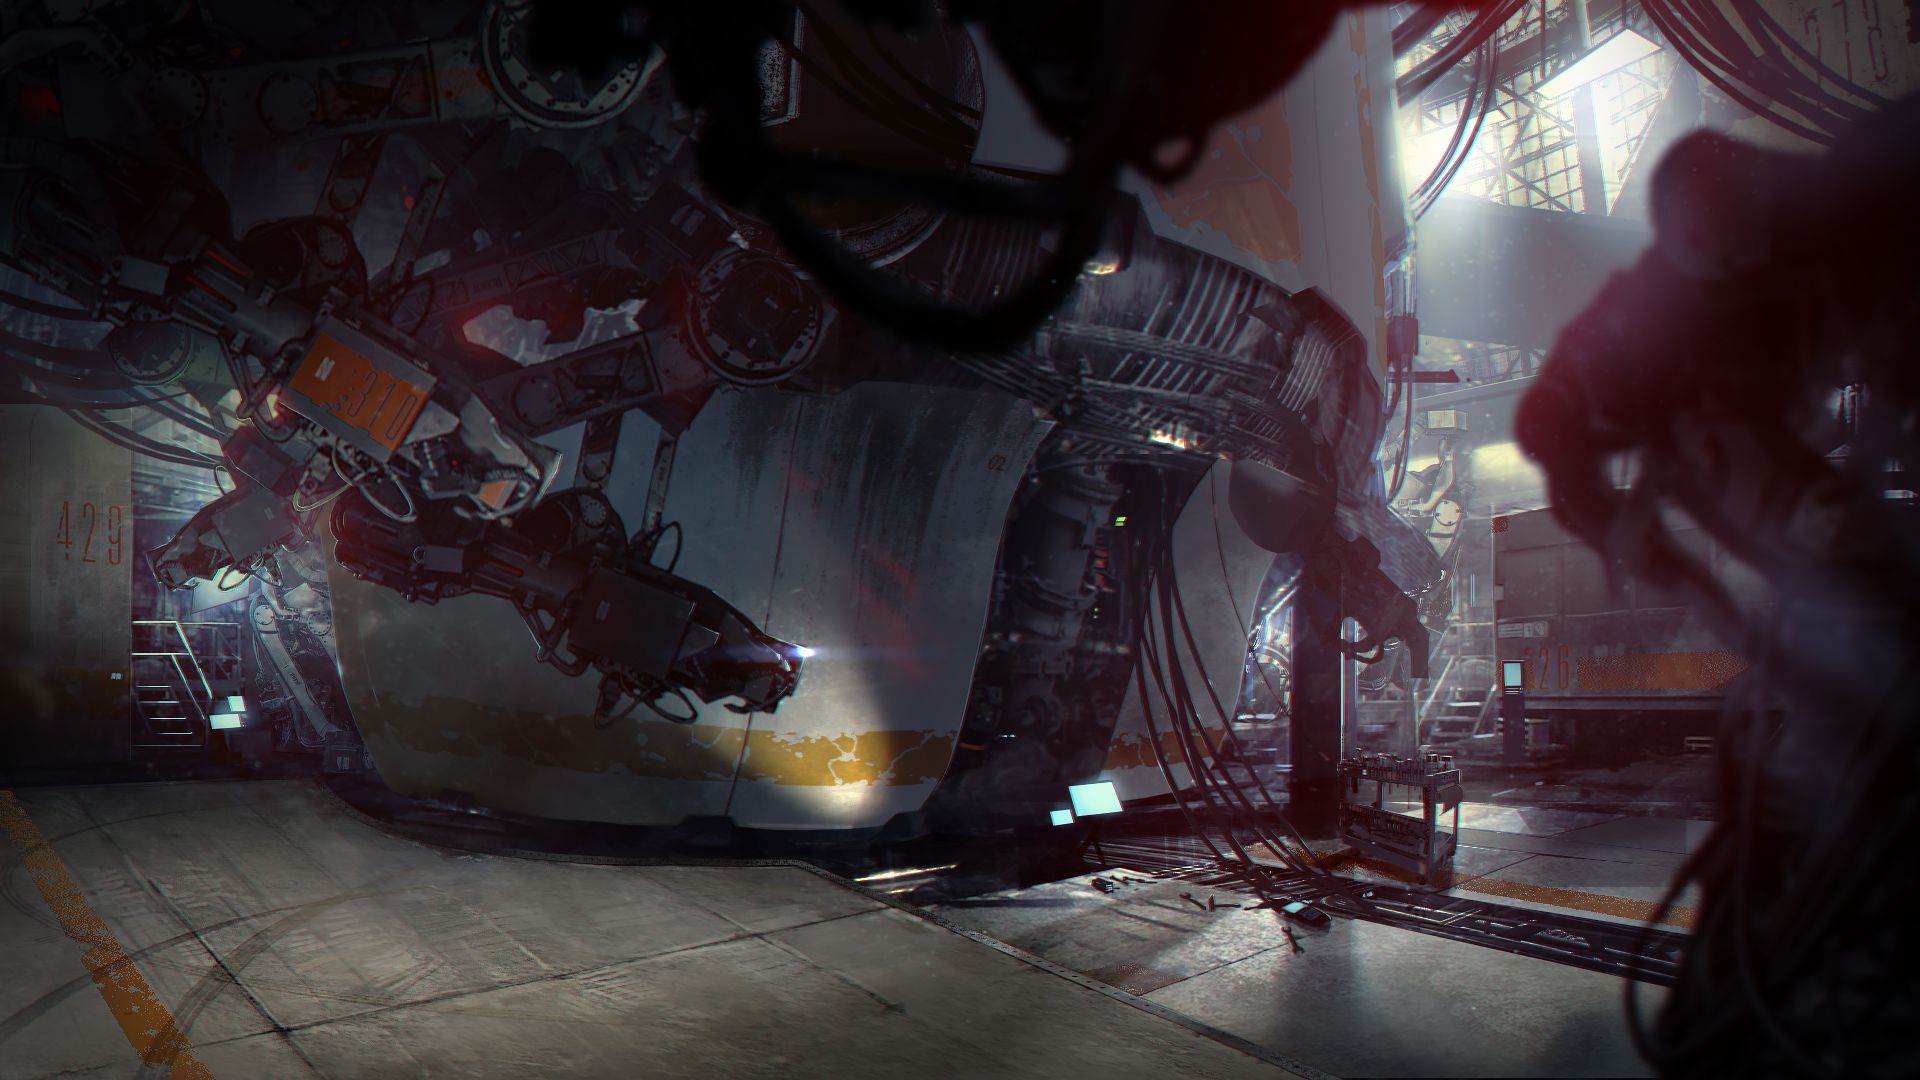 Photo of Detalii despre The Surge, noul joc al creatorilor lui Lords of the Fallen